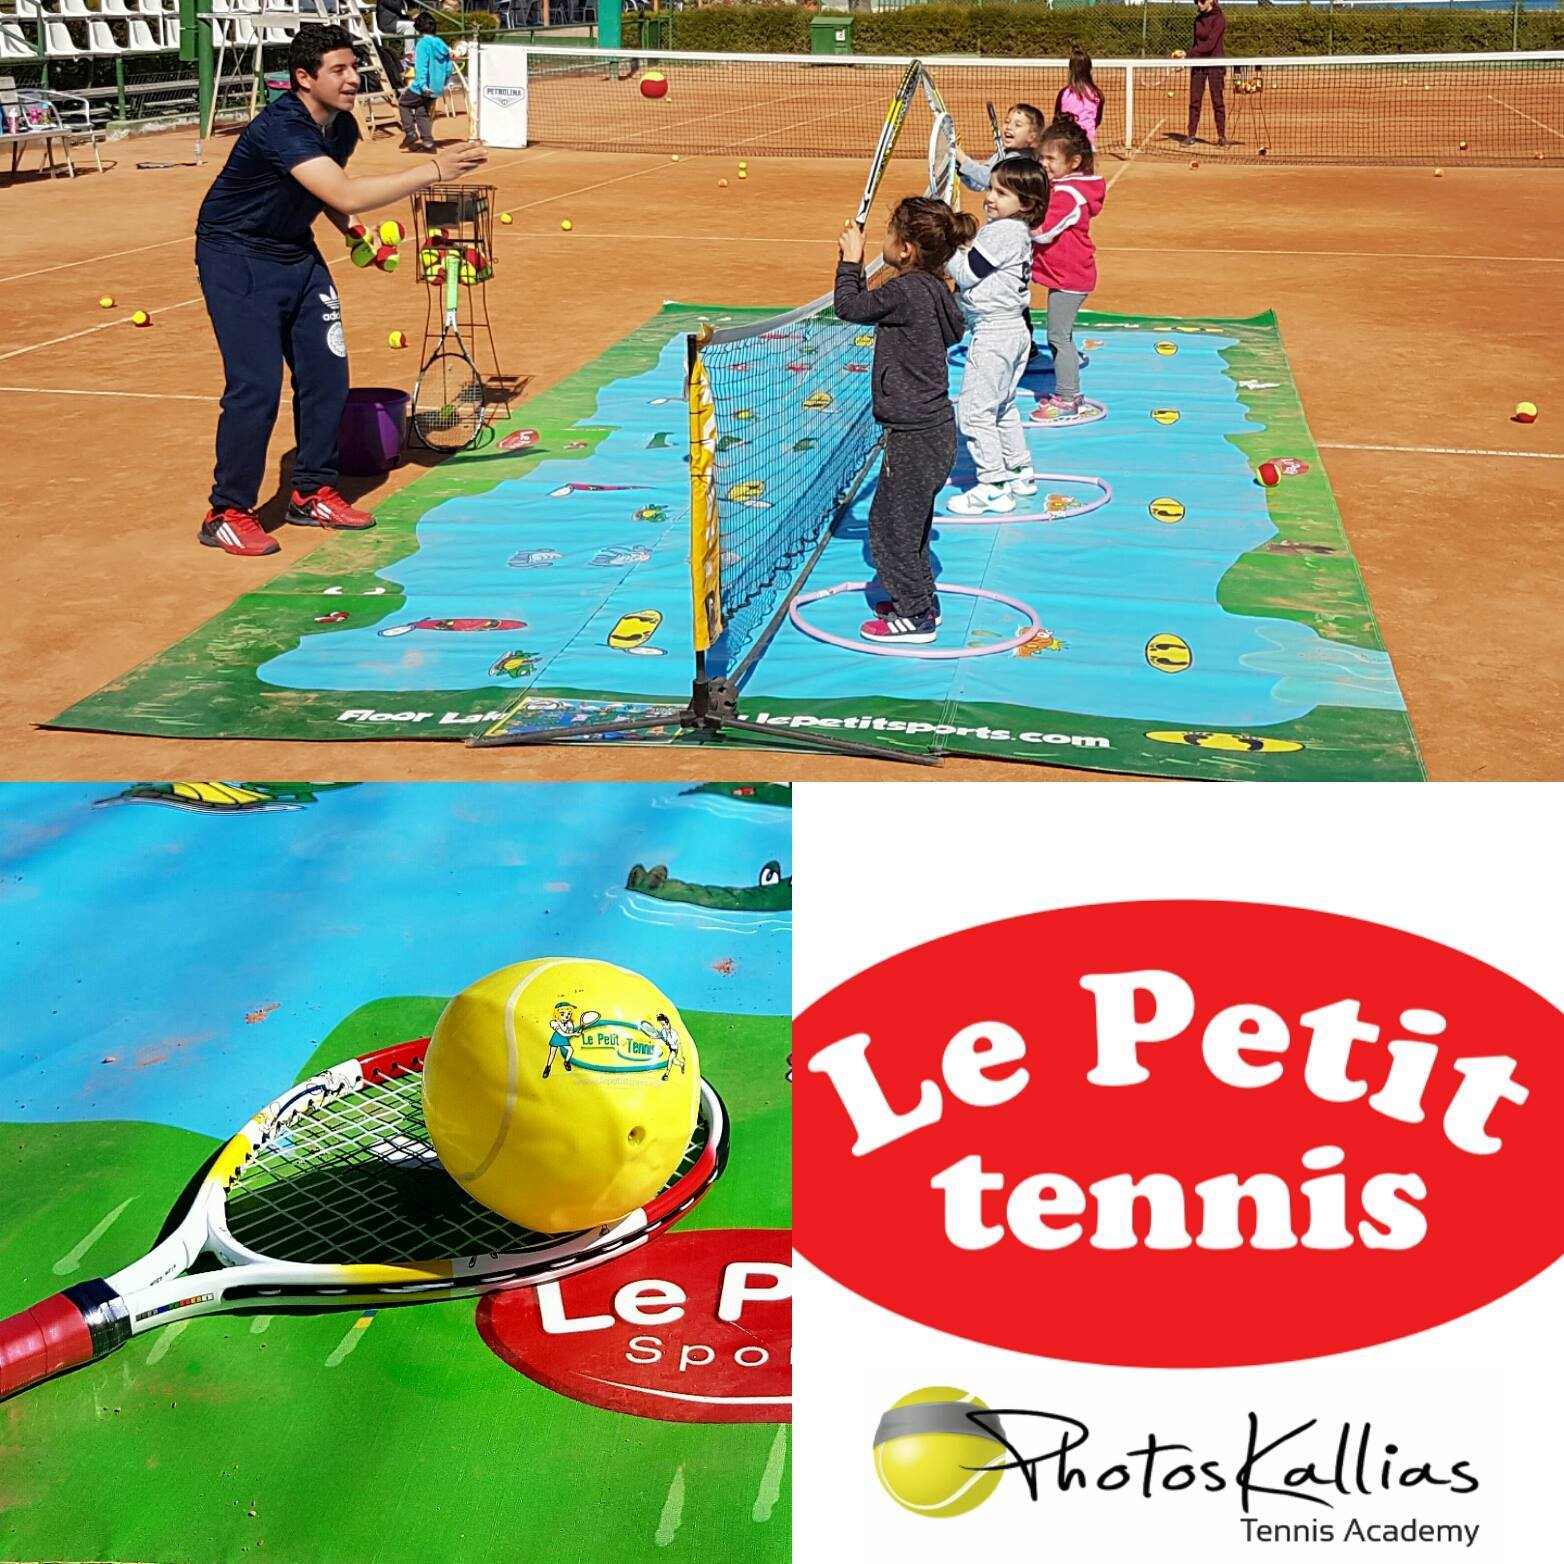 Petite tennis at photos kallias tennis academy